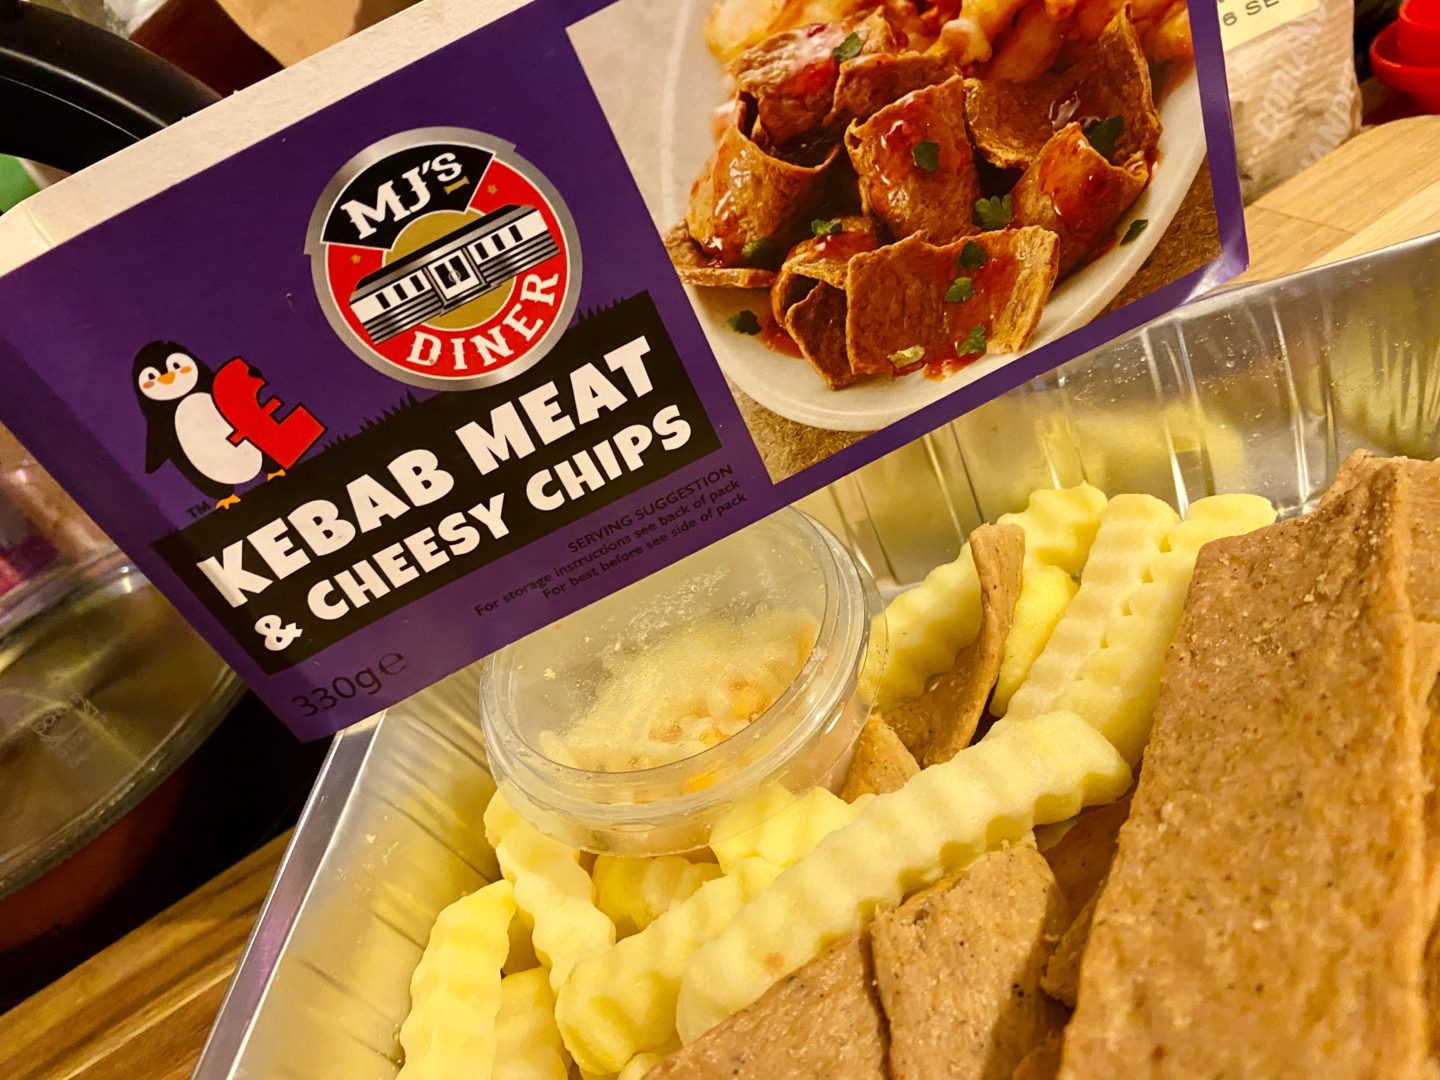 Kebab meat and cheesy chips before cooking